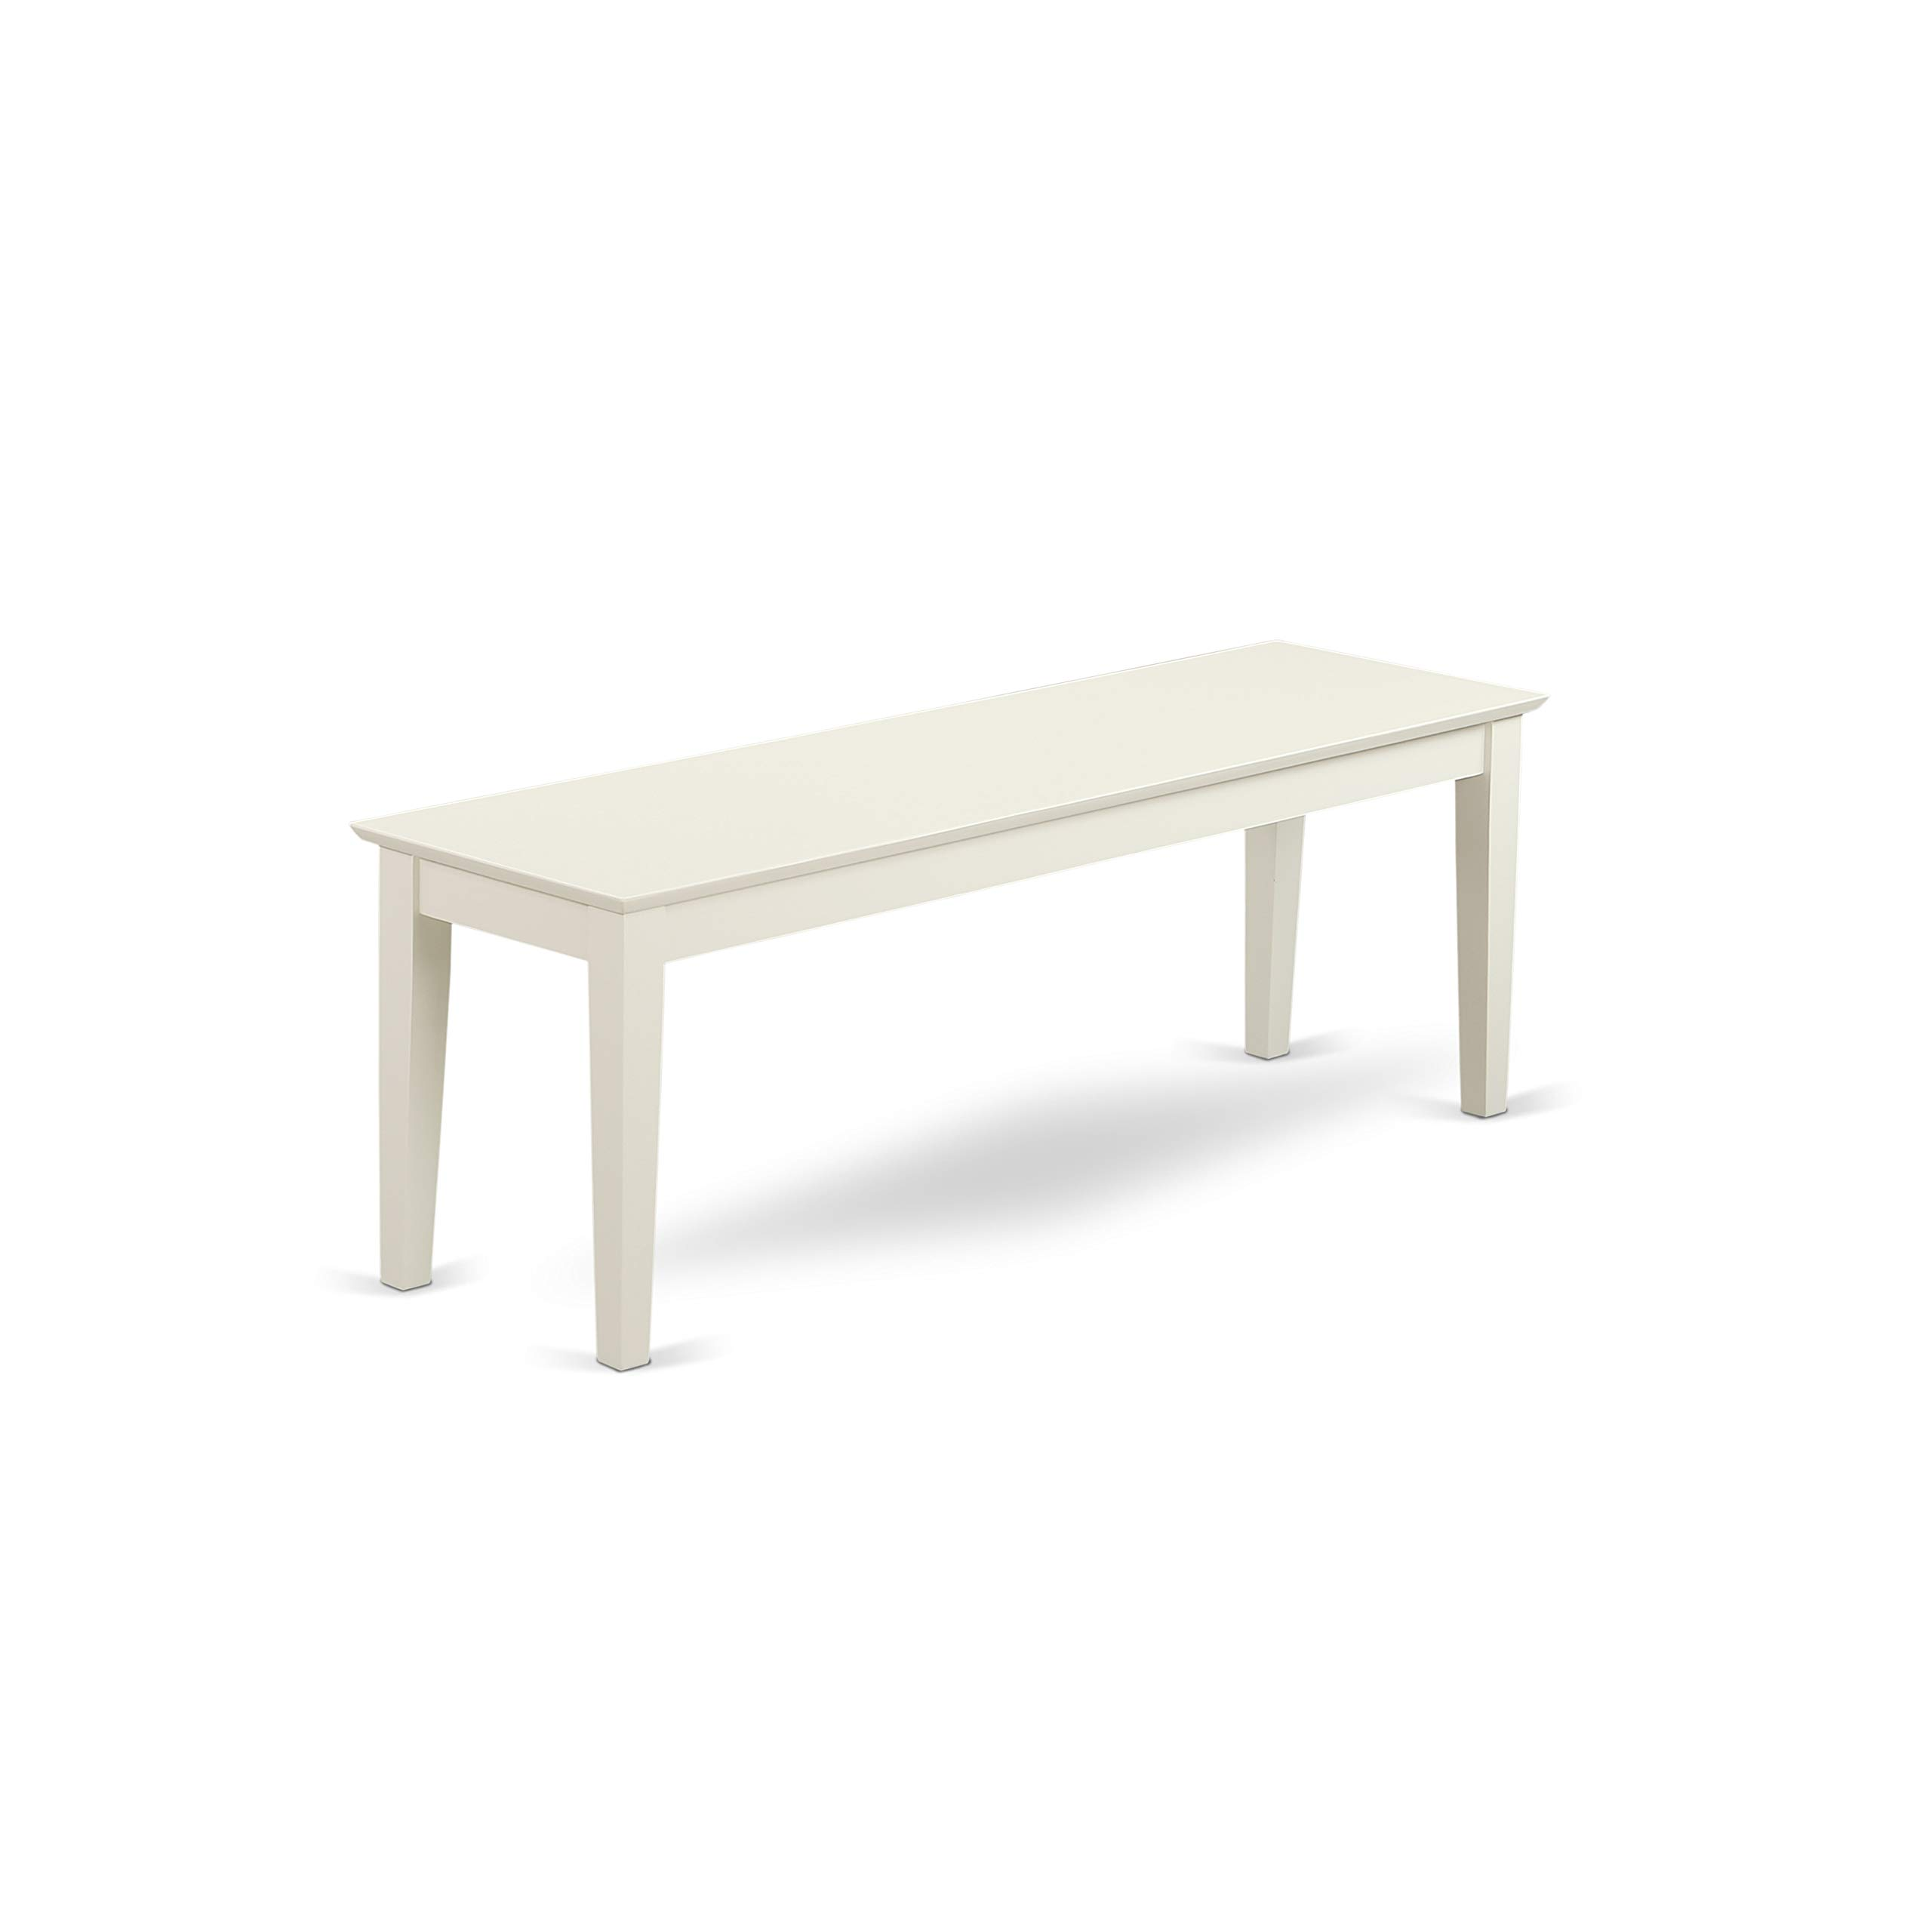 East West Furniture CAB-LWH-W Capri Bench, Linen White